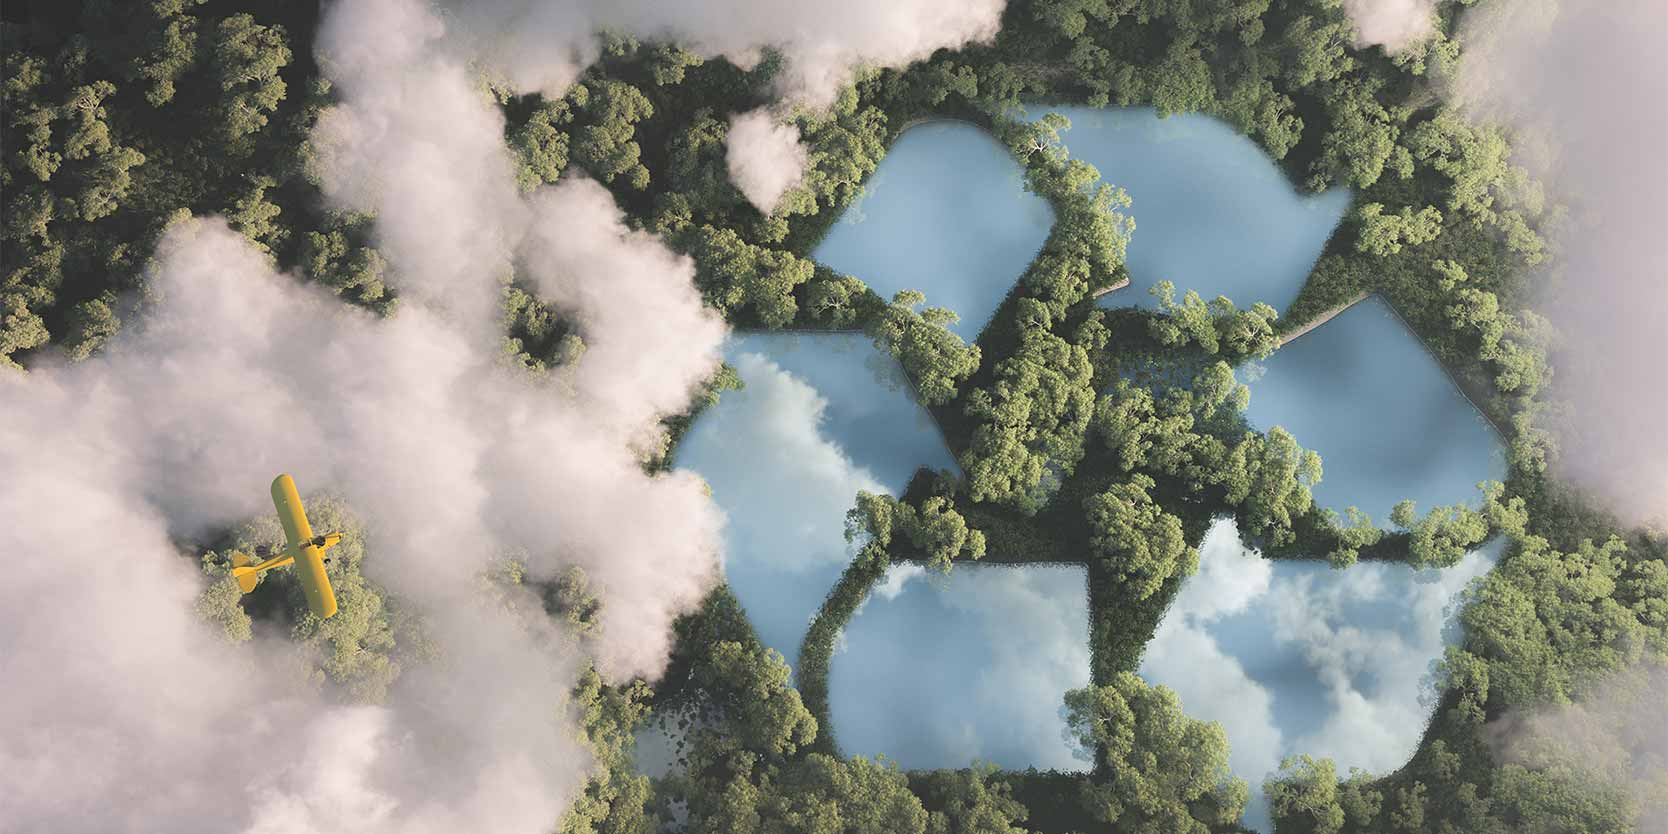 Flasky - Less Carbon Dioxide into the atmosphere